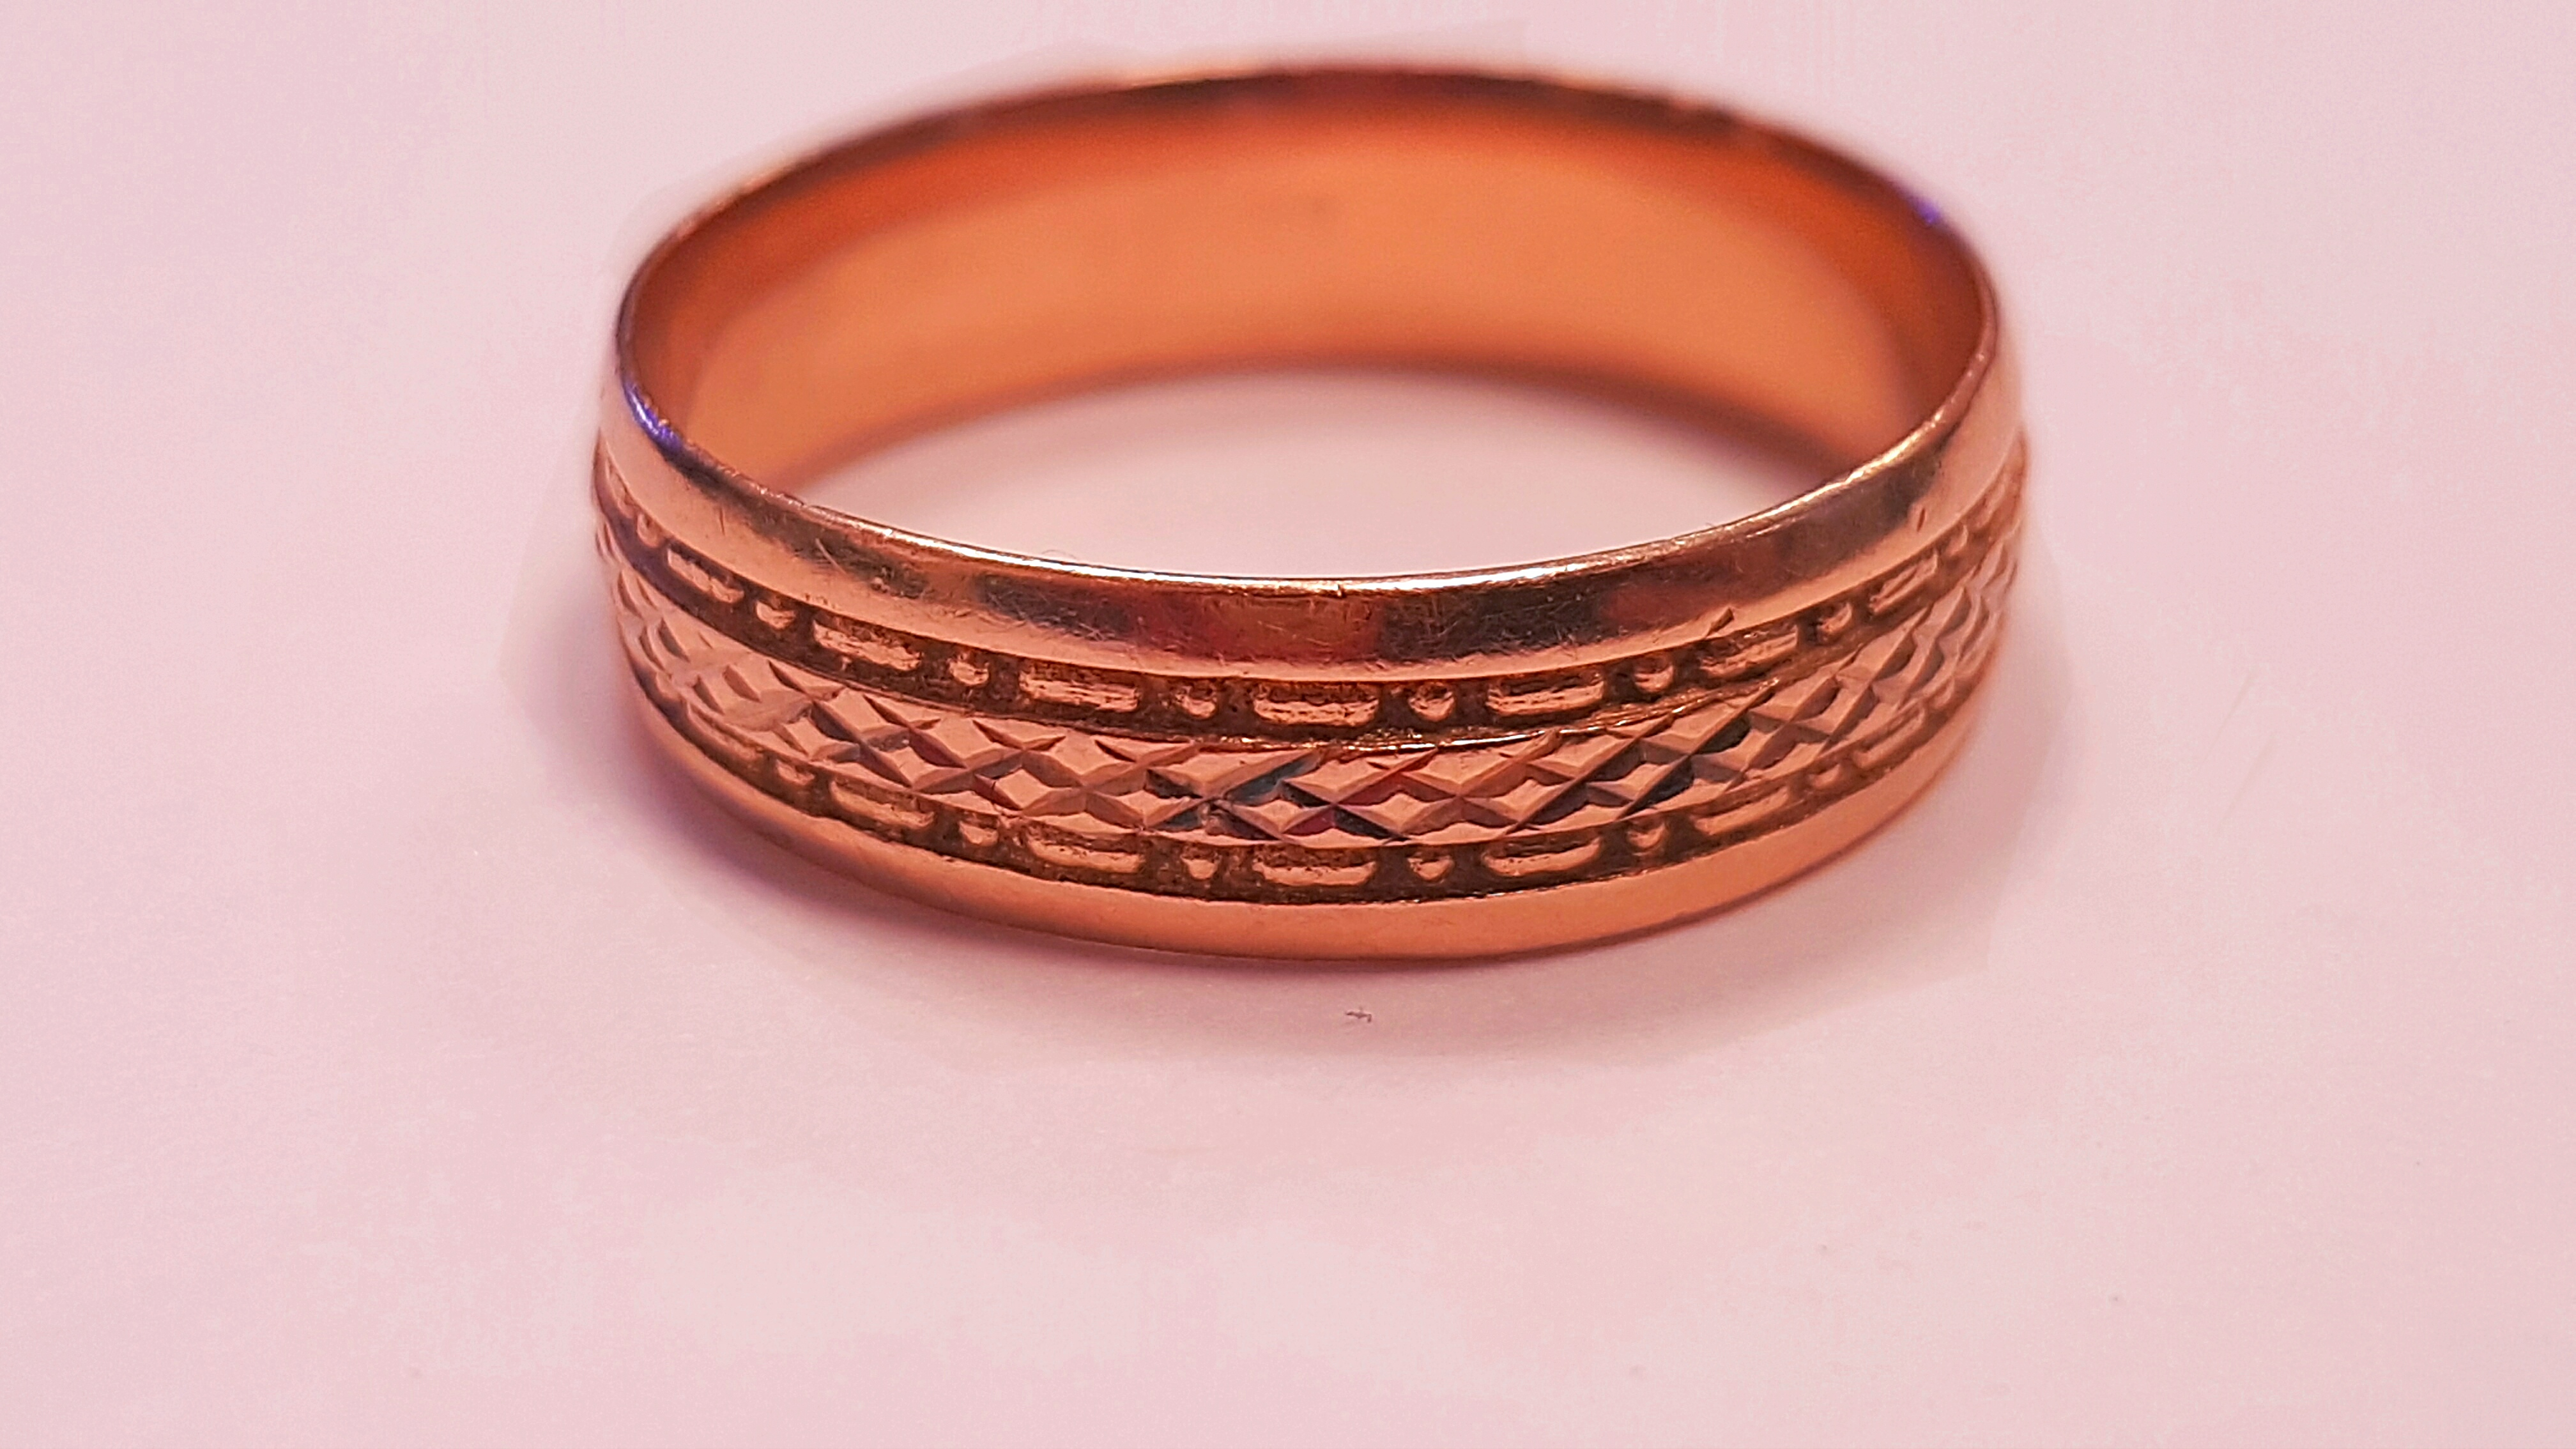 STOLEN!! 14carat Rose Gold Men\'s Wedding Band - Cash Express Repair ...